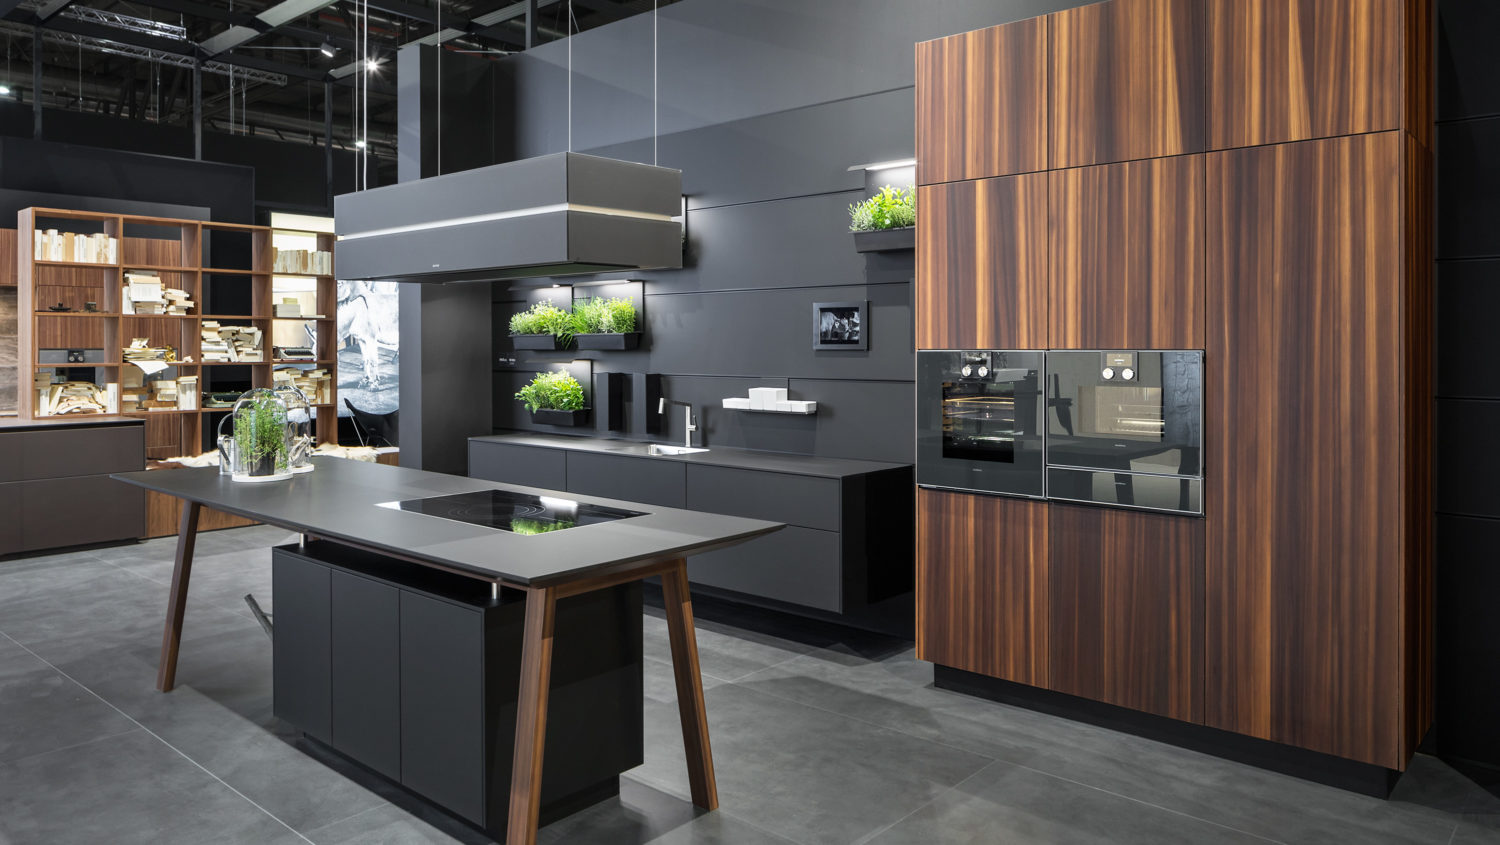 Luxury Kitchen Design Companies Dubai Abu Dhabi Uae